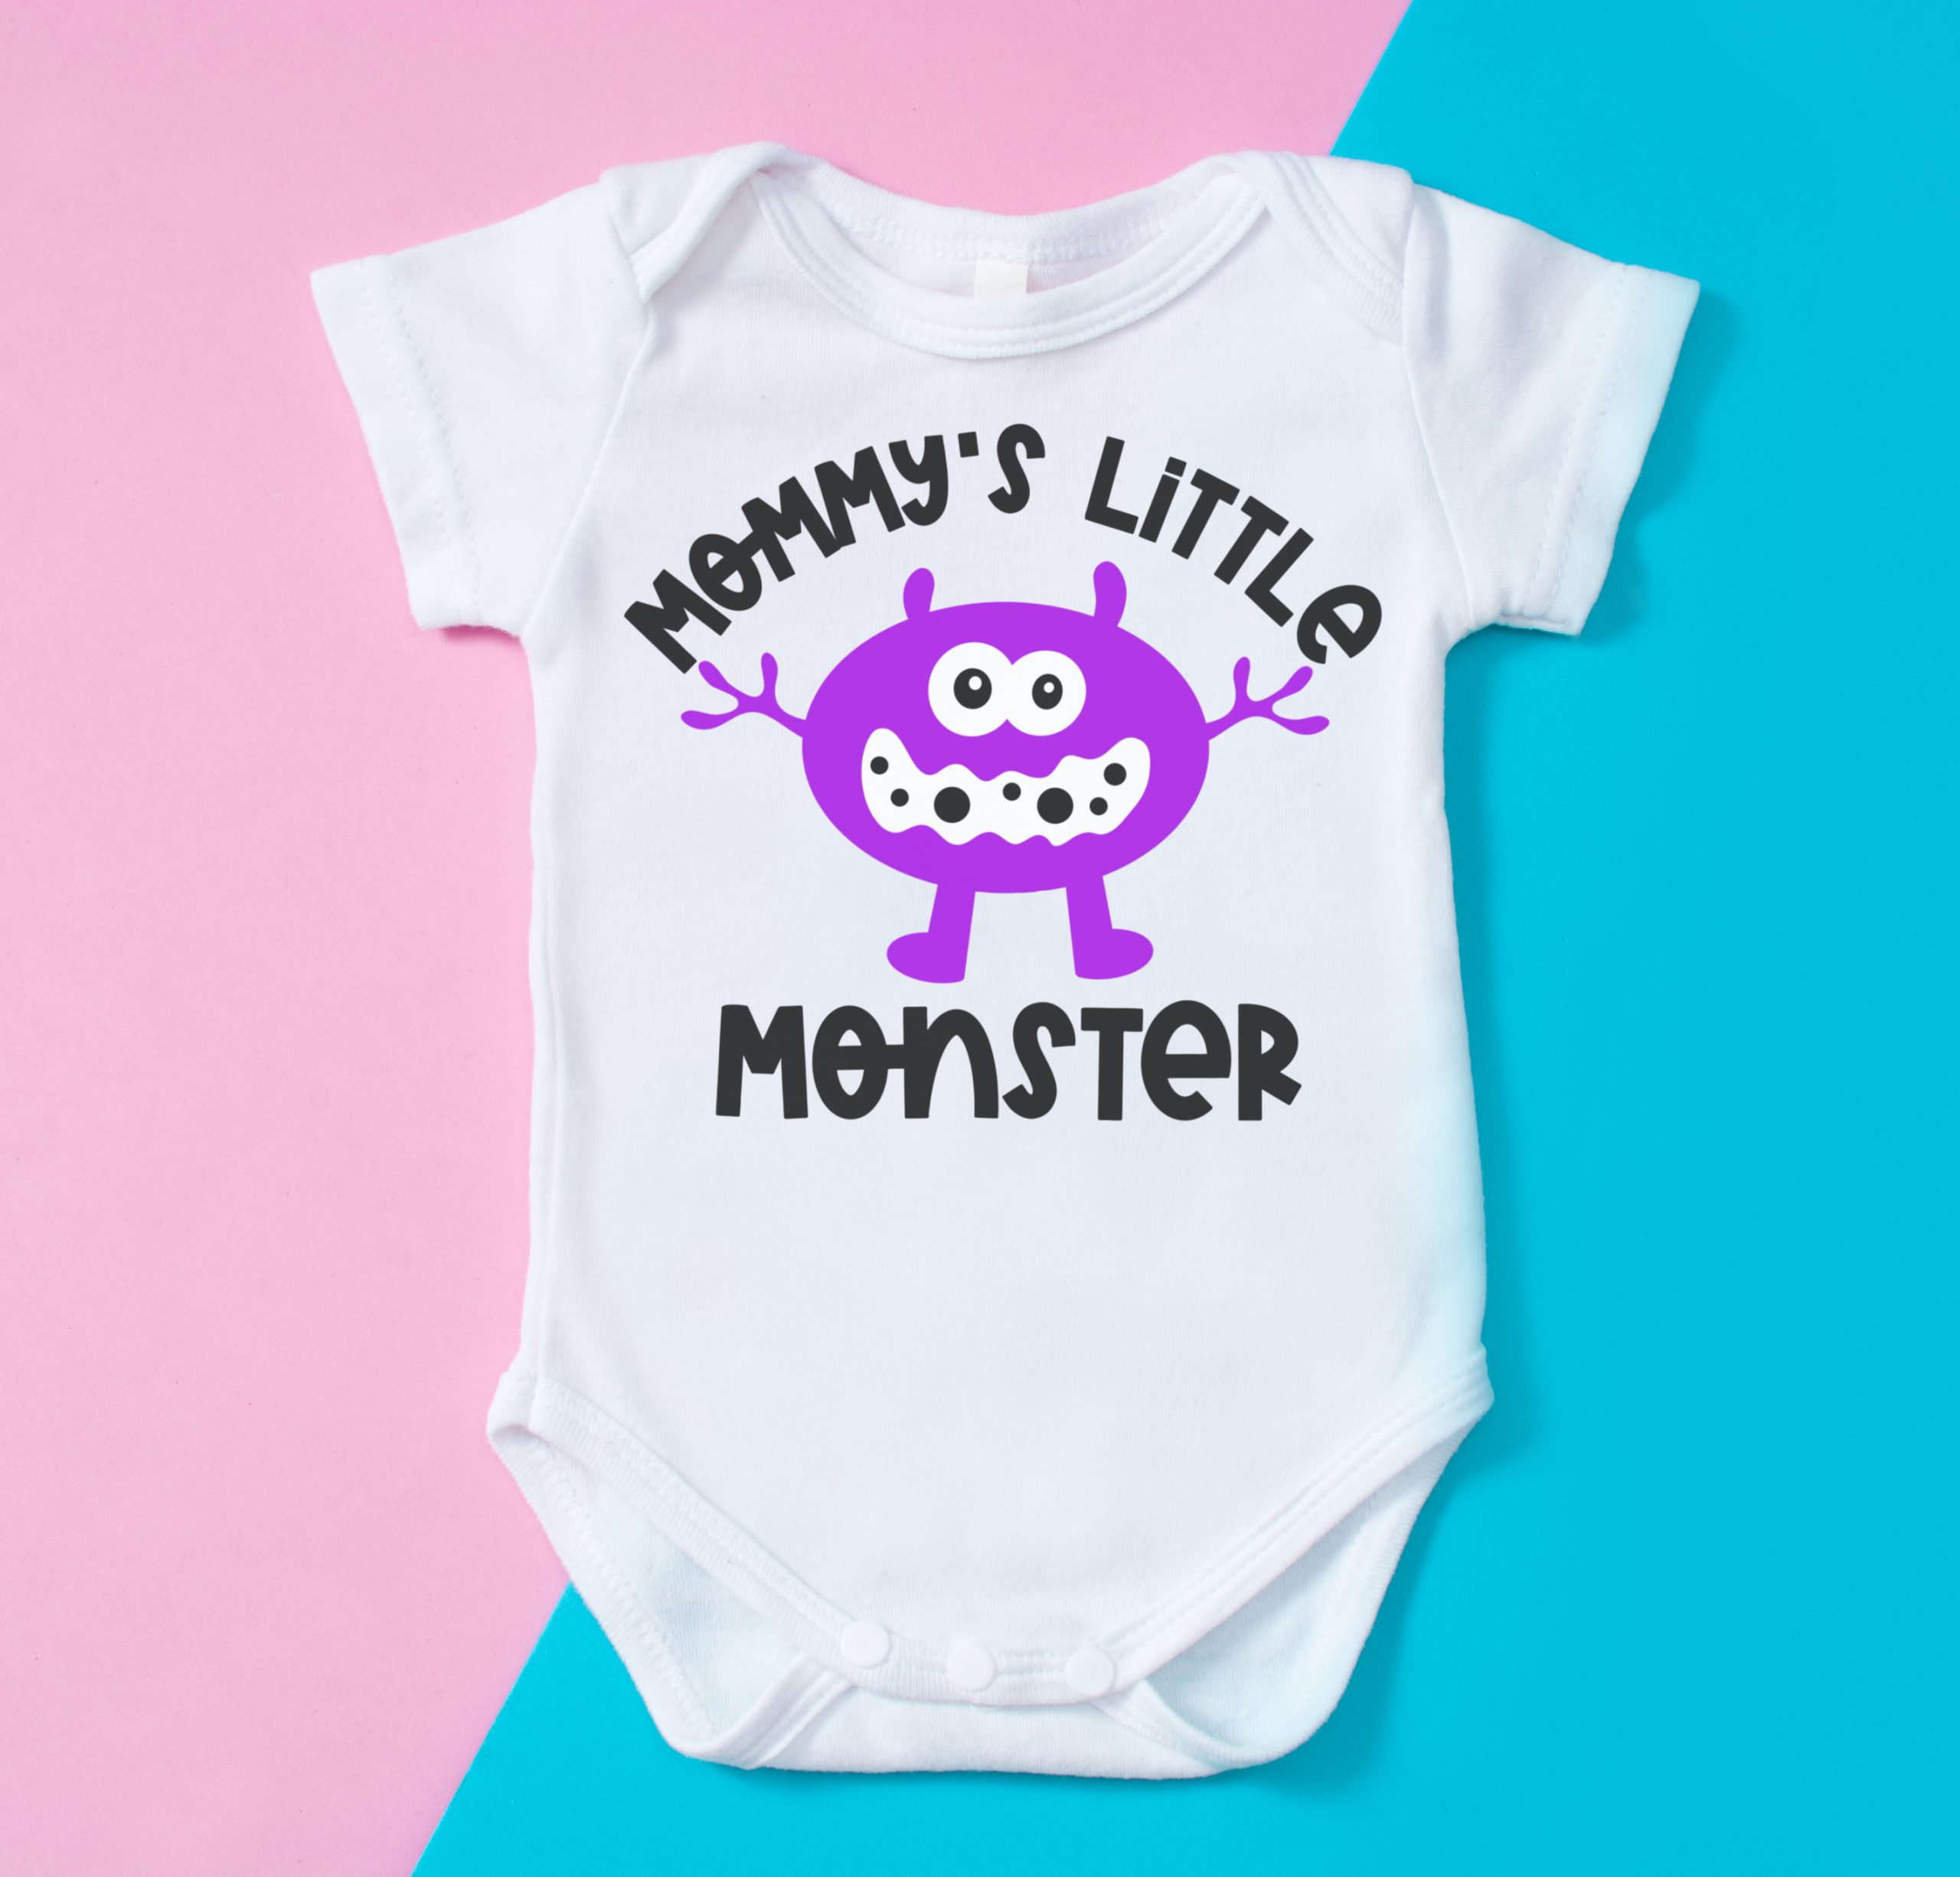 Mommy and Me SVG Mothers Day SVG Cut Files for Cricut Gift for First Mom Just A Mama in Love with her Boy Design for T Shirt and Onesie